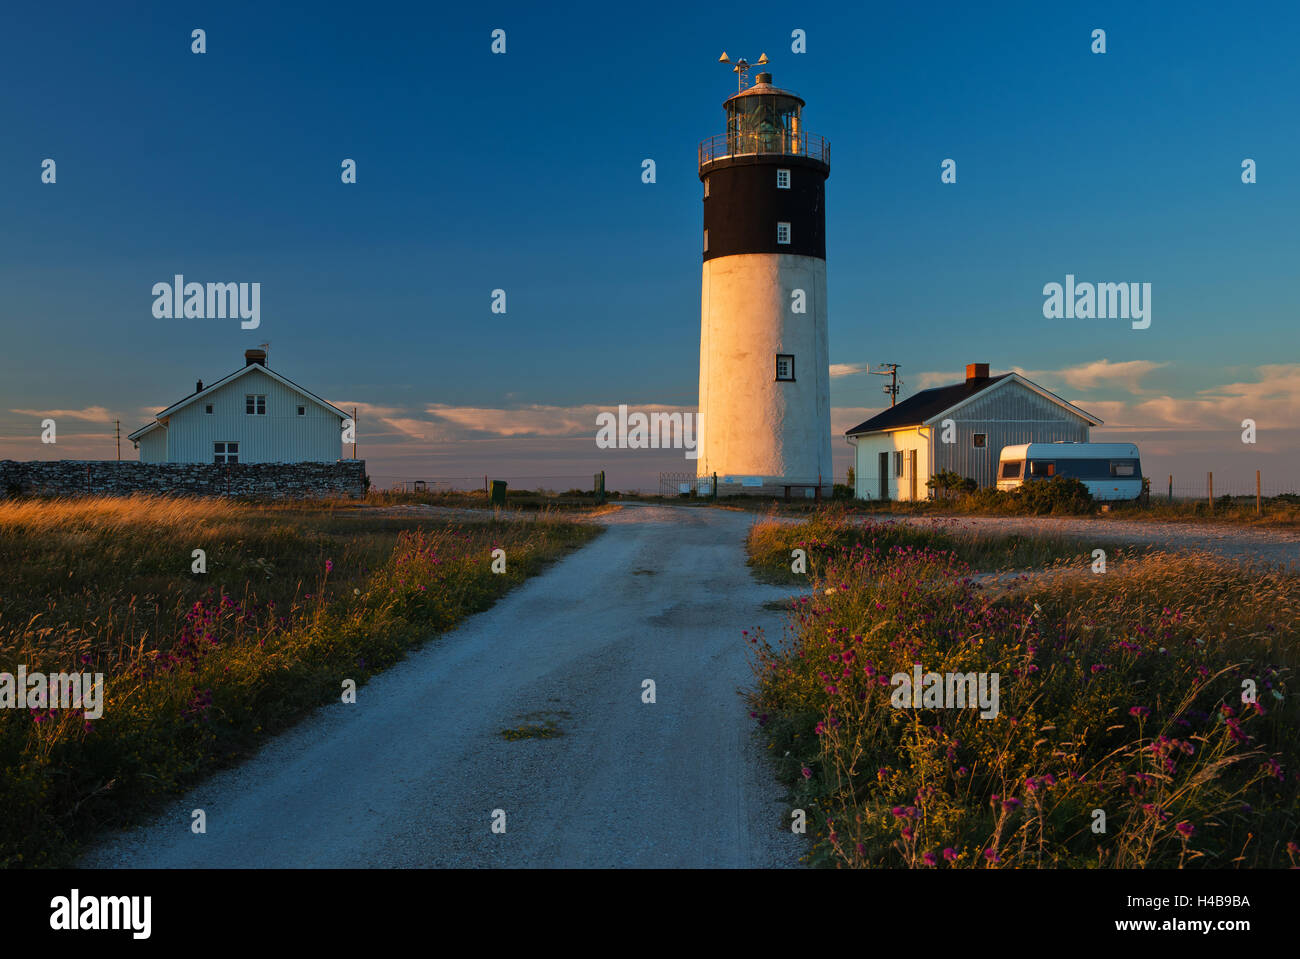 Lighthouse Hoburgen at the south point of the Gotland Island, Sweden - Stock Image